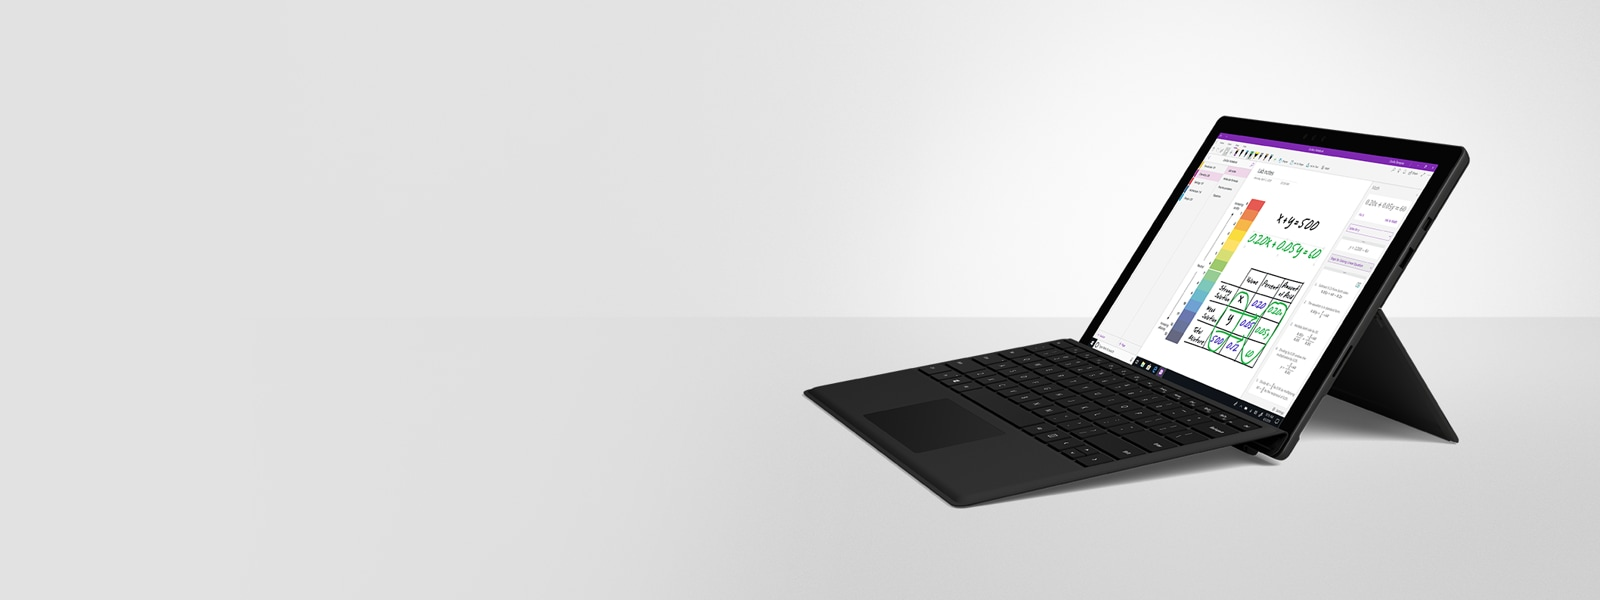 A Surface Pro 6 with Type Cover